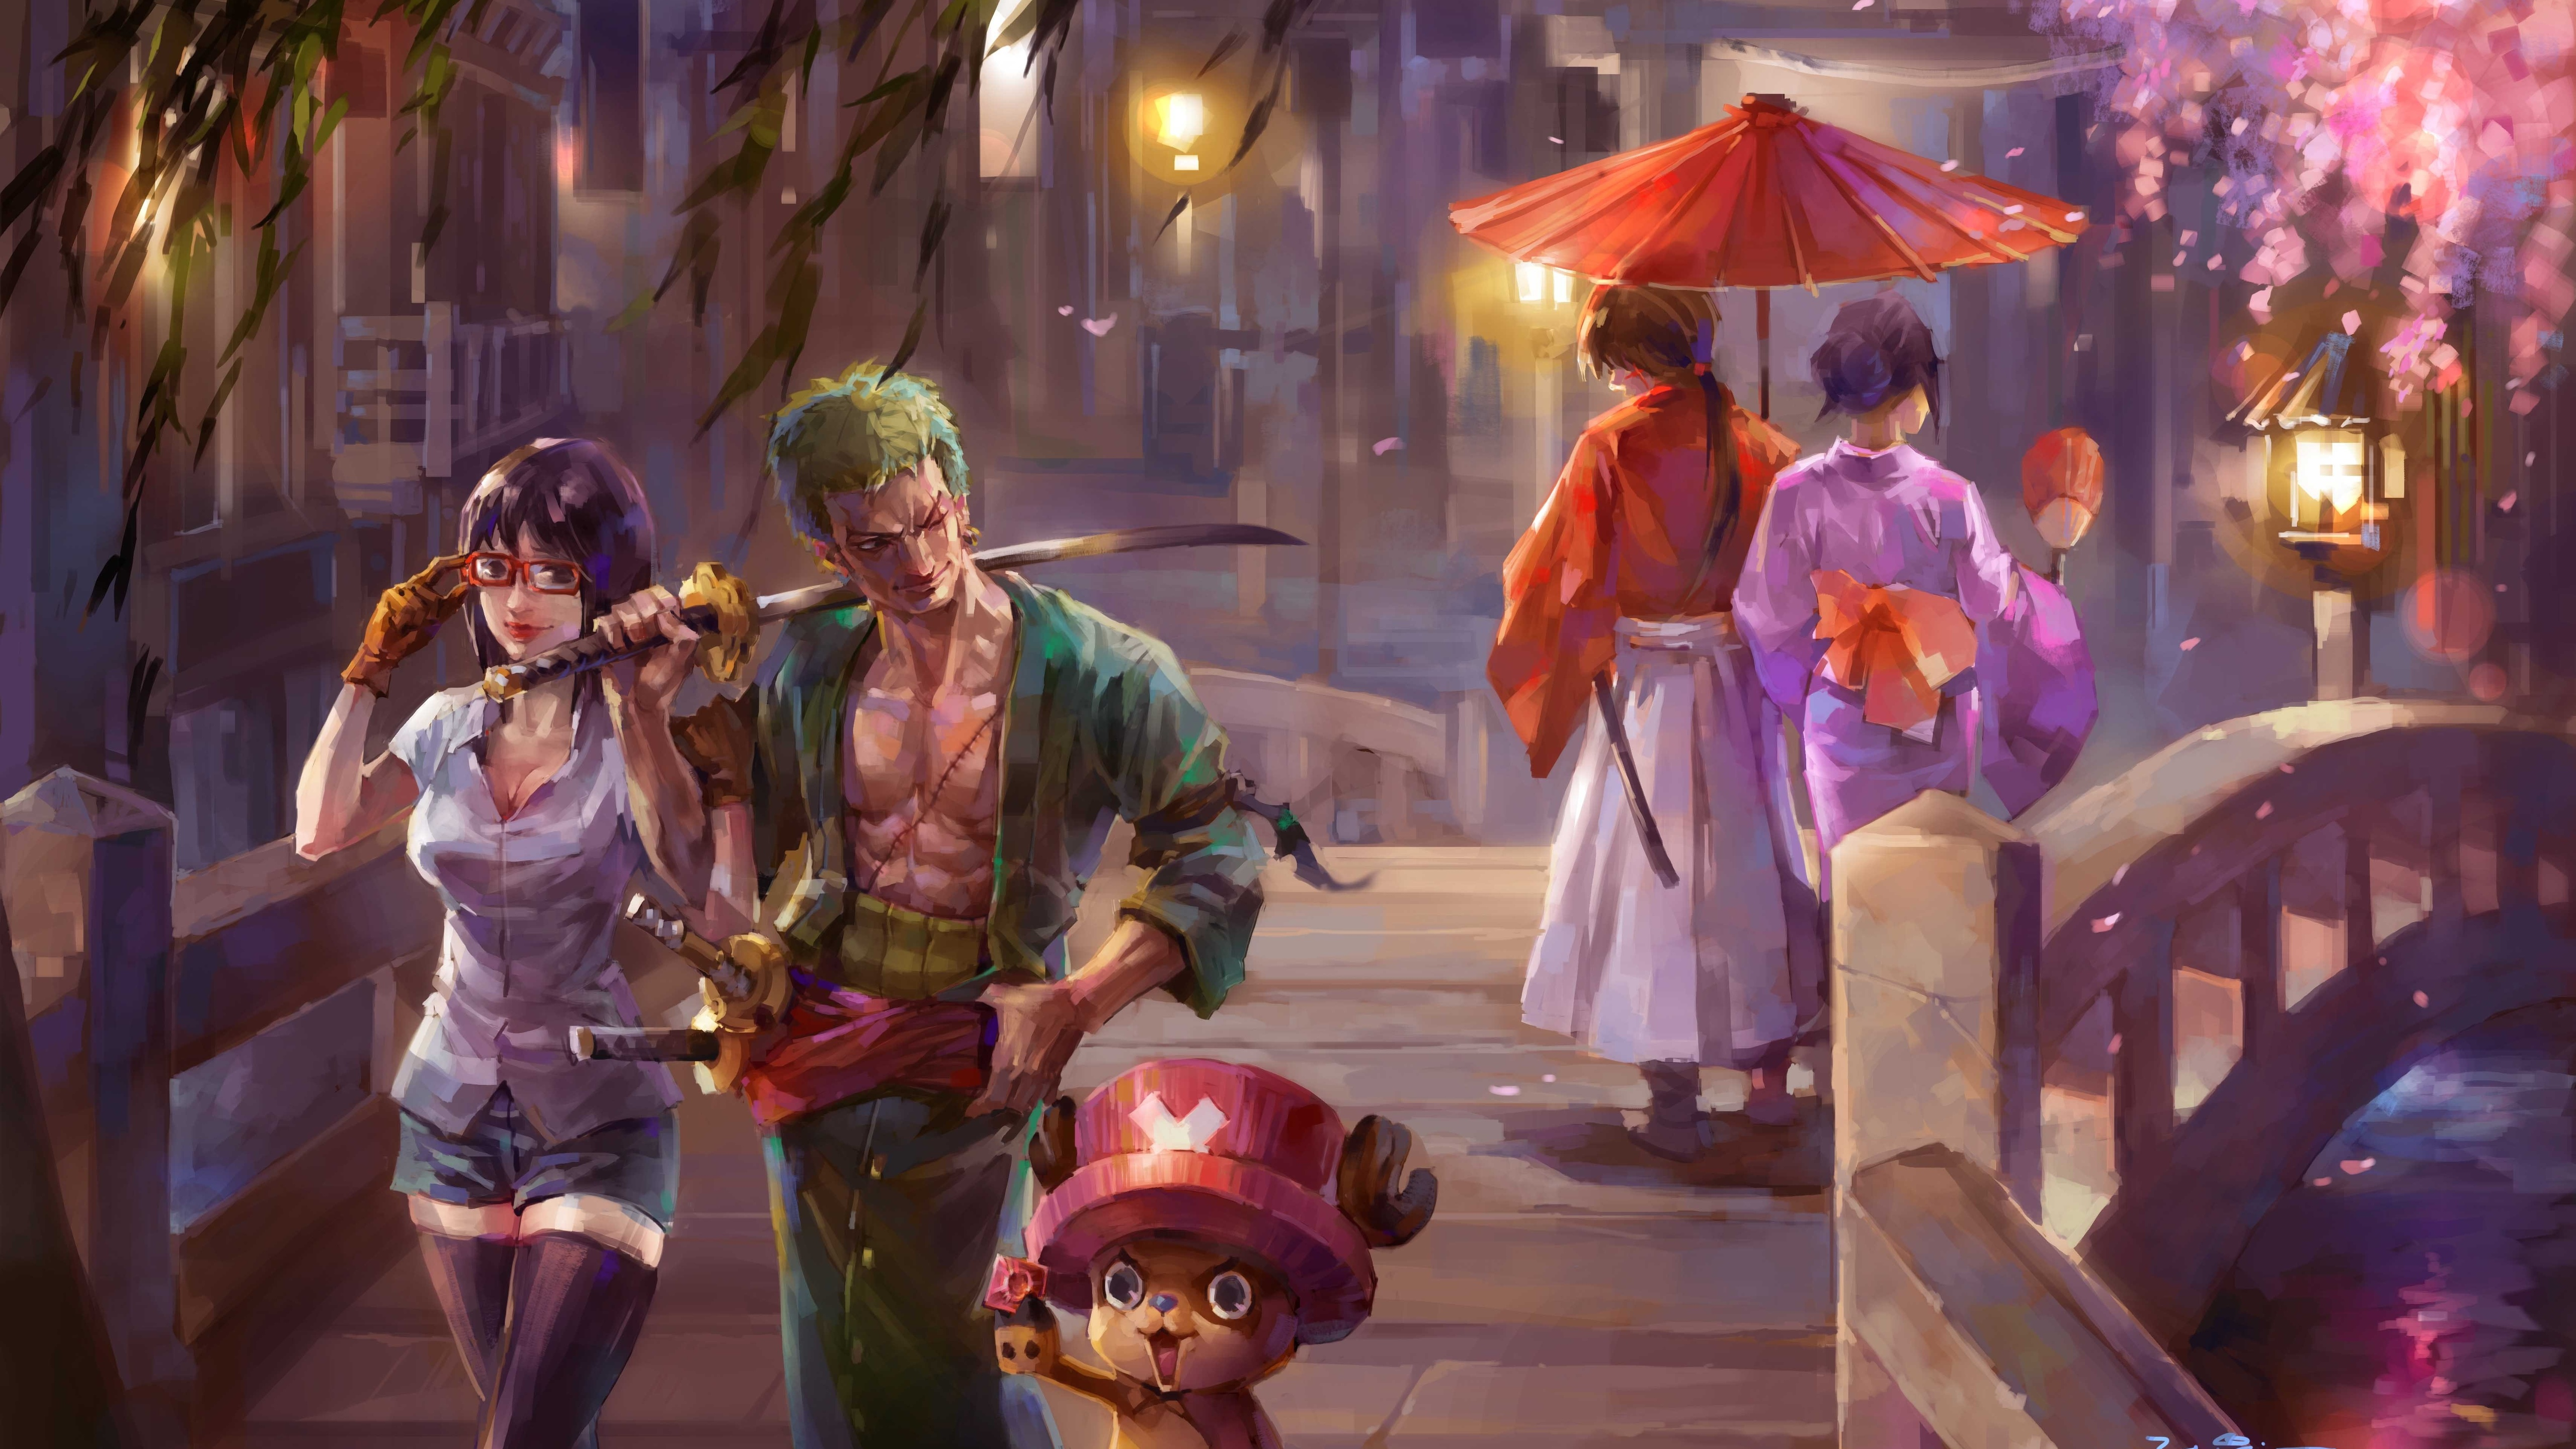 5120x2880 One Piece Painting 5k 5k Hd 4k Wallpapers Images